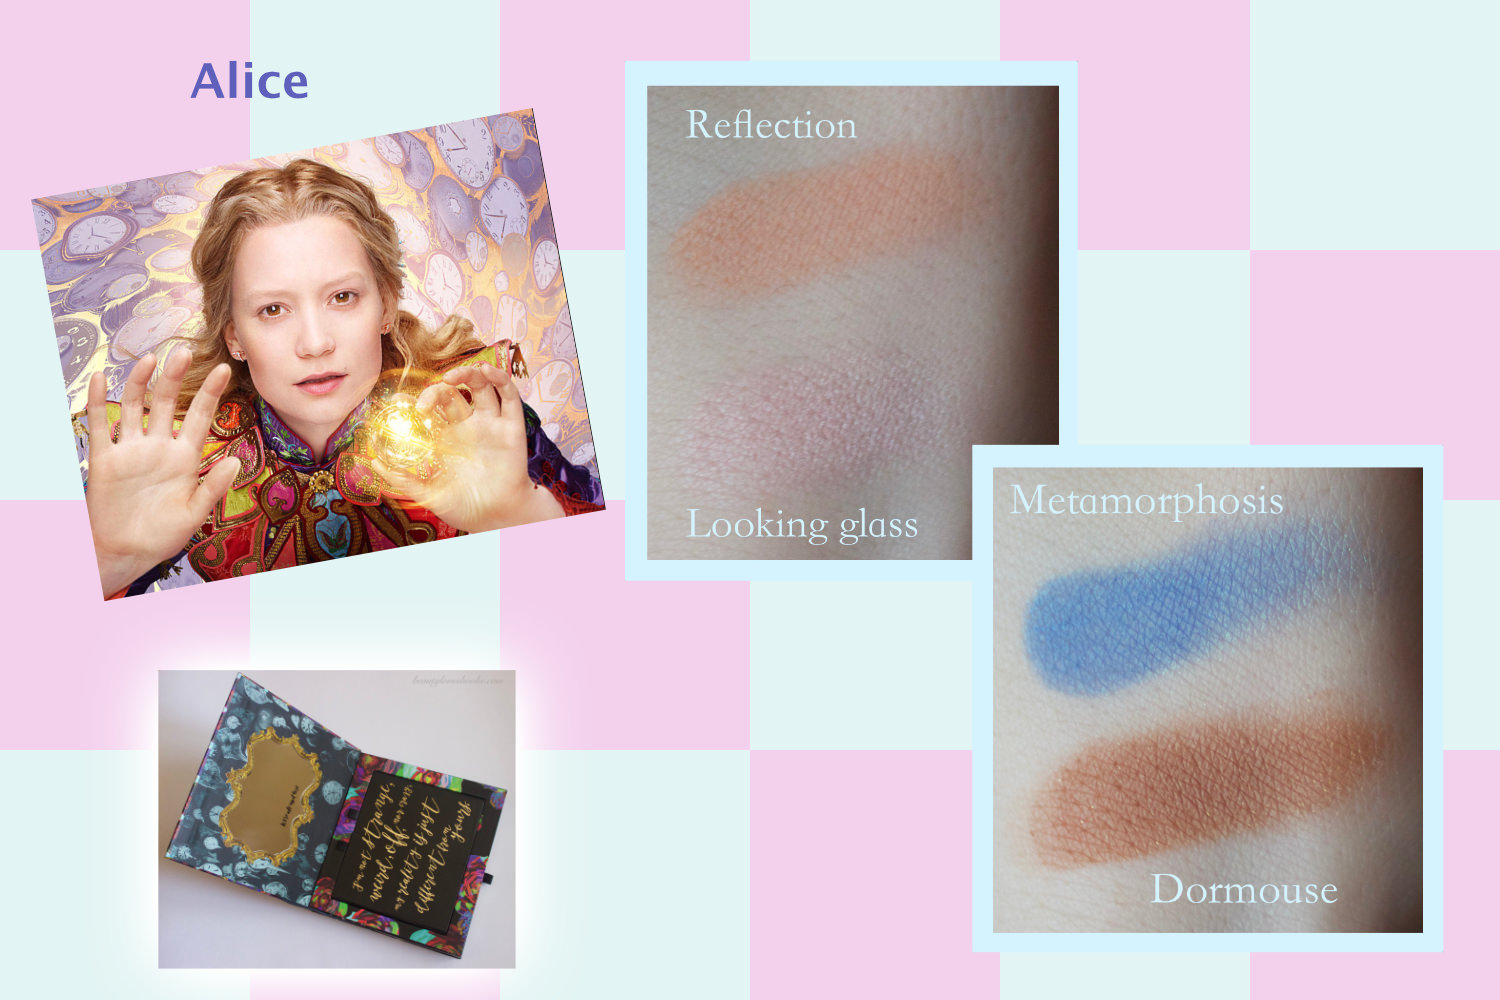 Urban Decay X Alice through the looking glass eyeshadow palette swatches, Alice makeup look